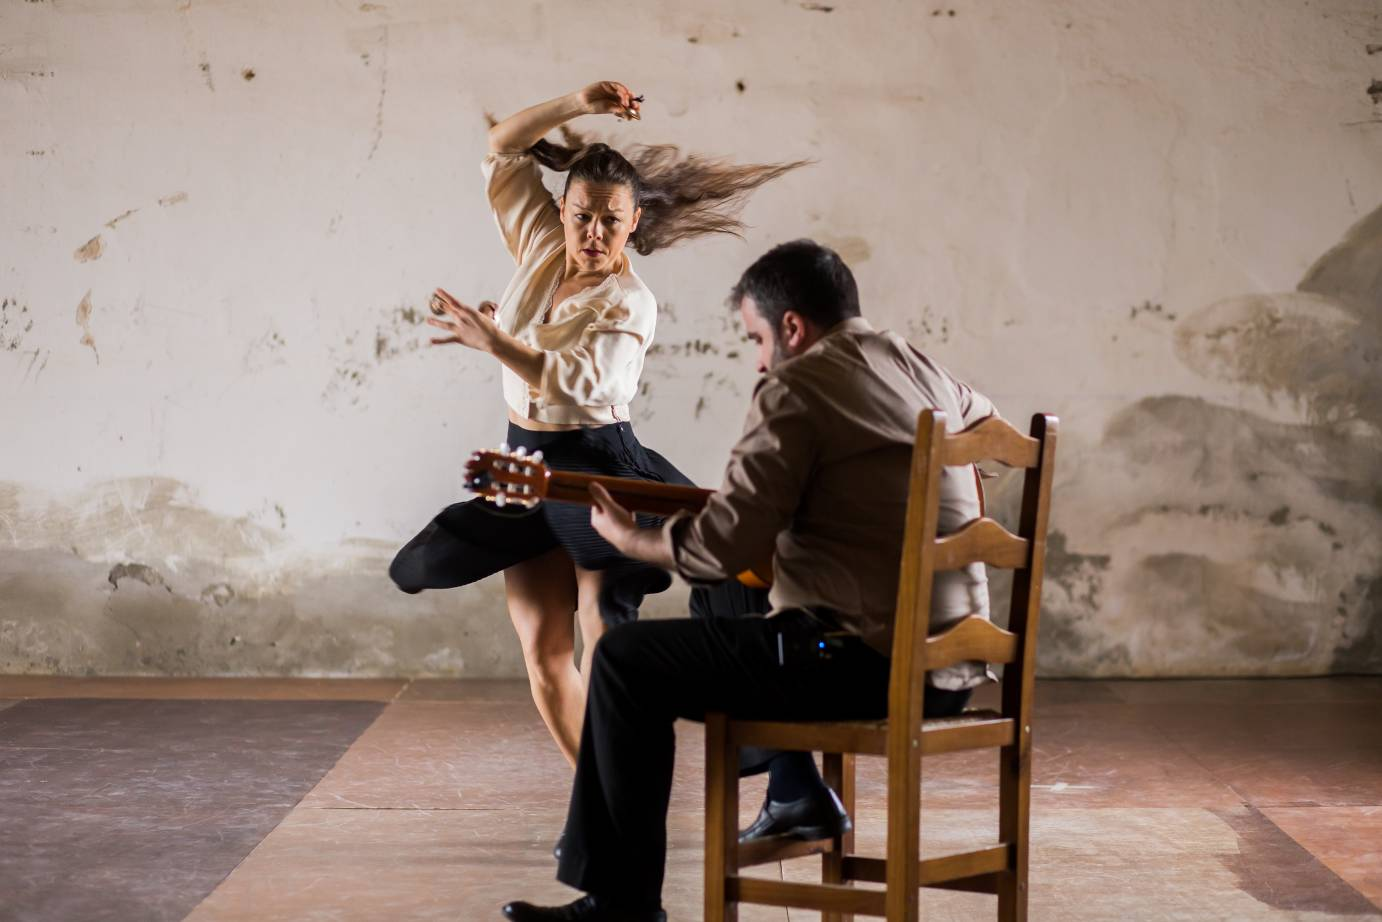 Rocio Molina dances with abandon close to the flamenco guitarist